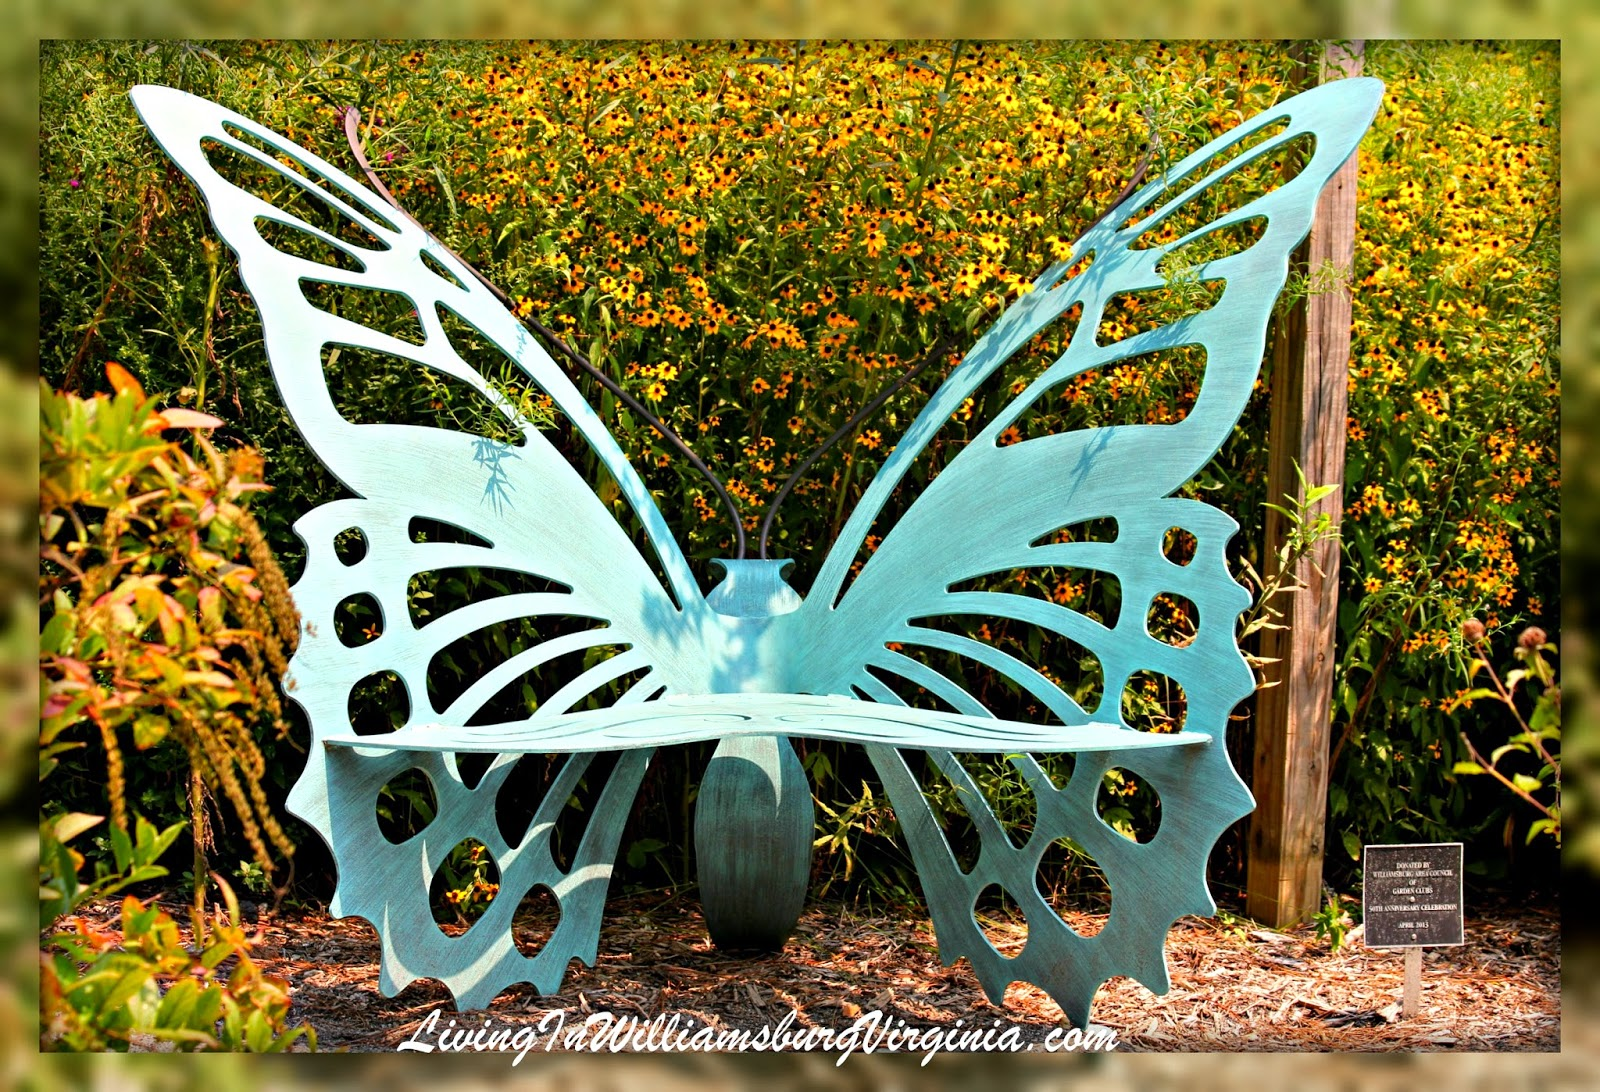 A Butterfly Bench Nestled In The Butterfly Garden Of The Williamsburg  Botanical Gardens Seems Quite Appropriate. This Section Of The Garden  Includes Plants ...